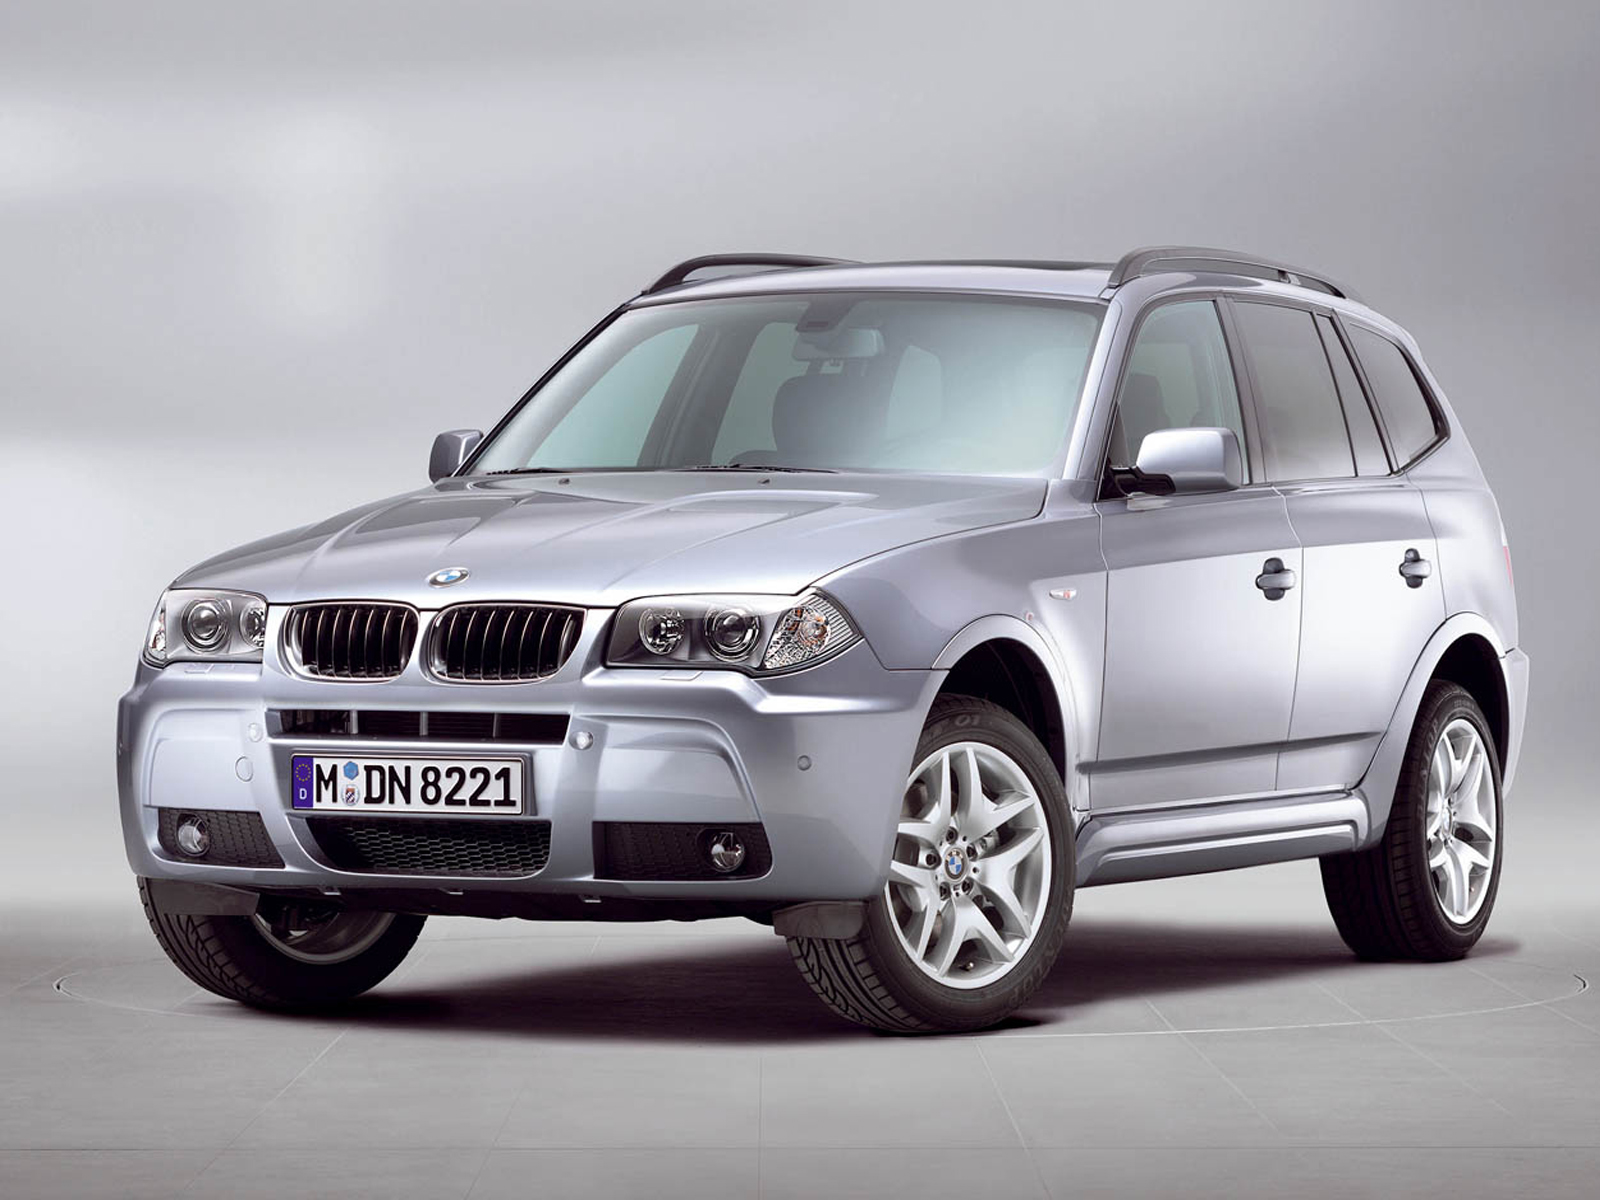 2005 bmw x3 3 0d front view